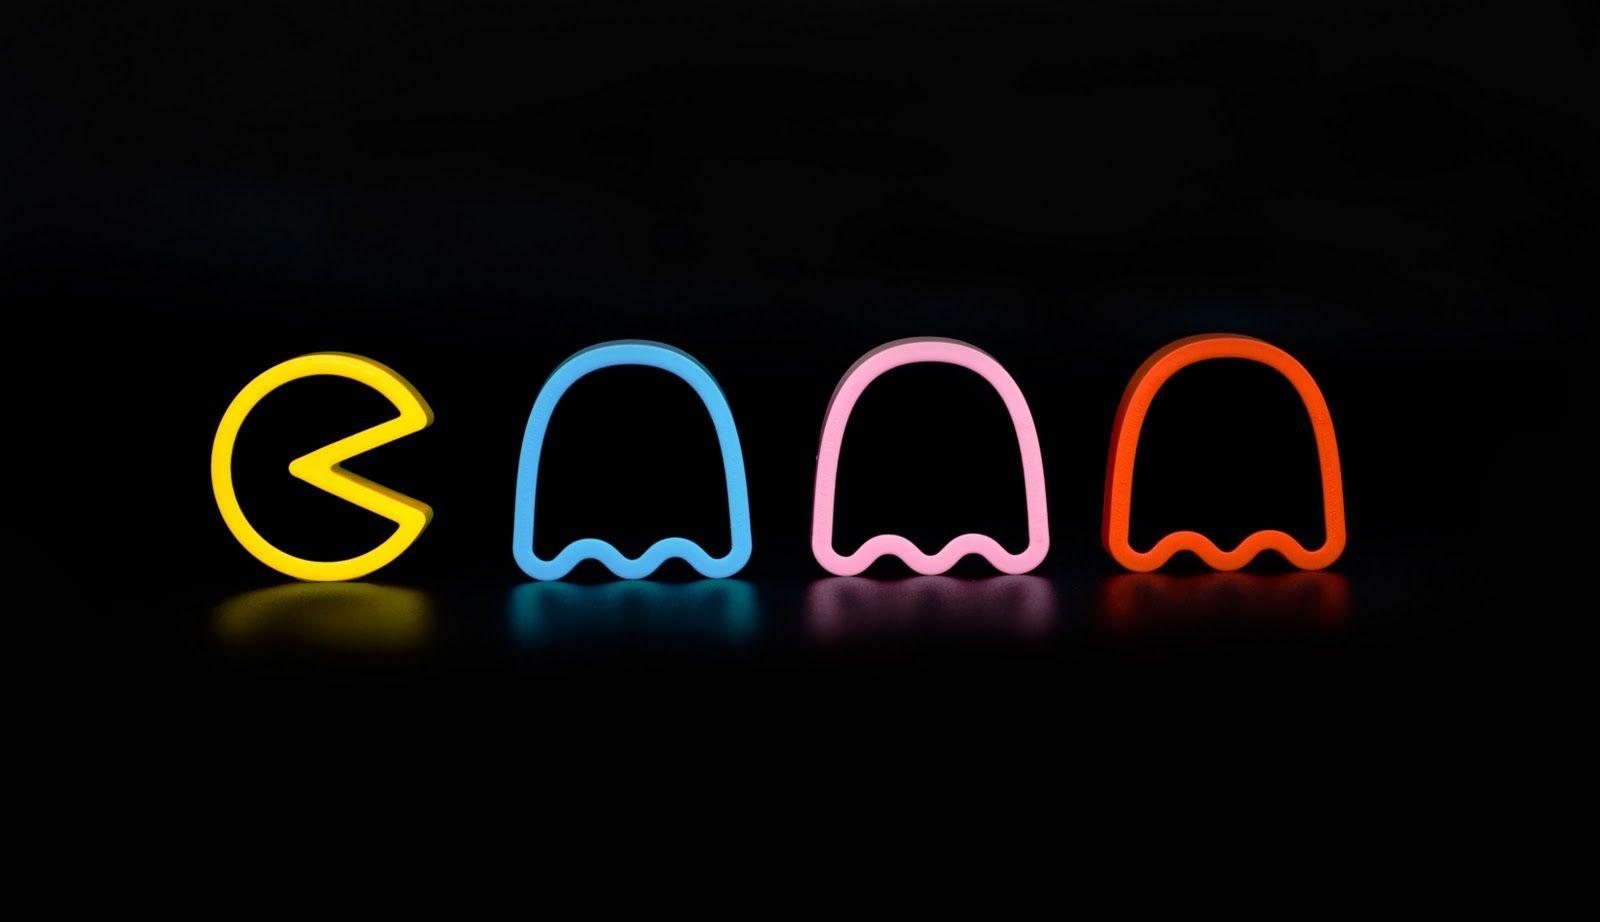 Hd Pacman Wallpapers Top Free Hd Pacman Backgrounds Wallpaperaccess